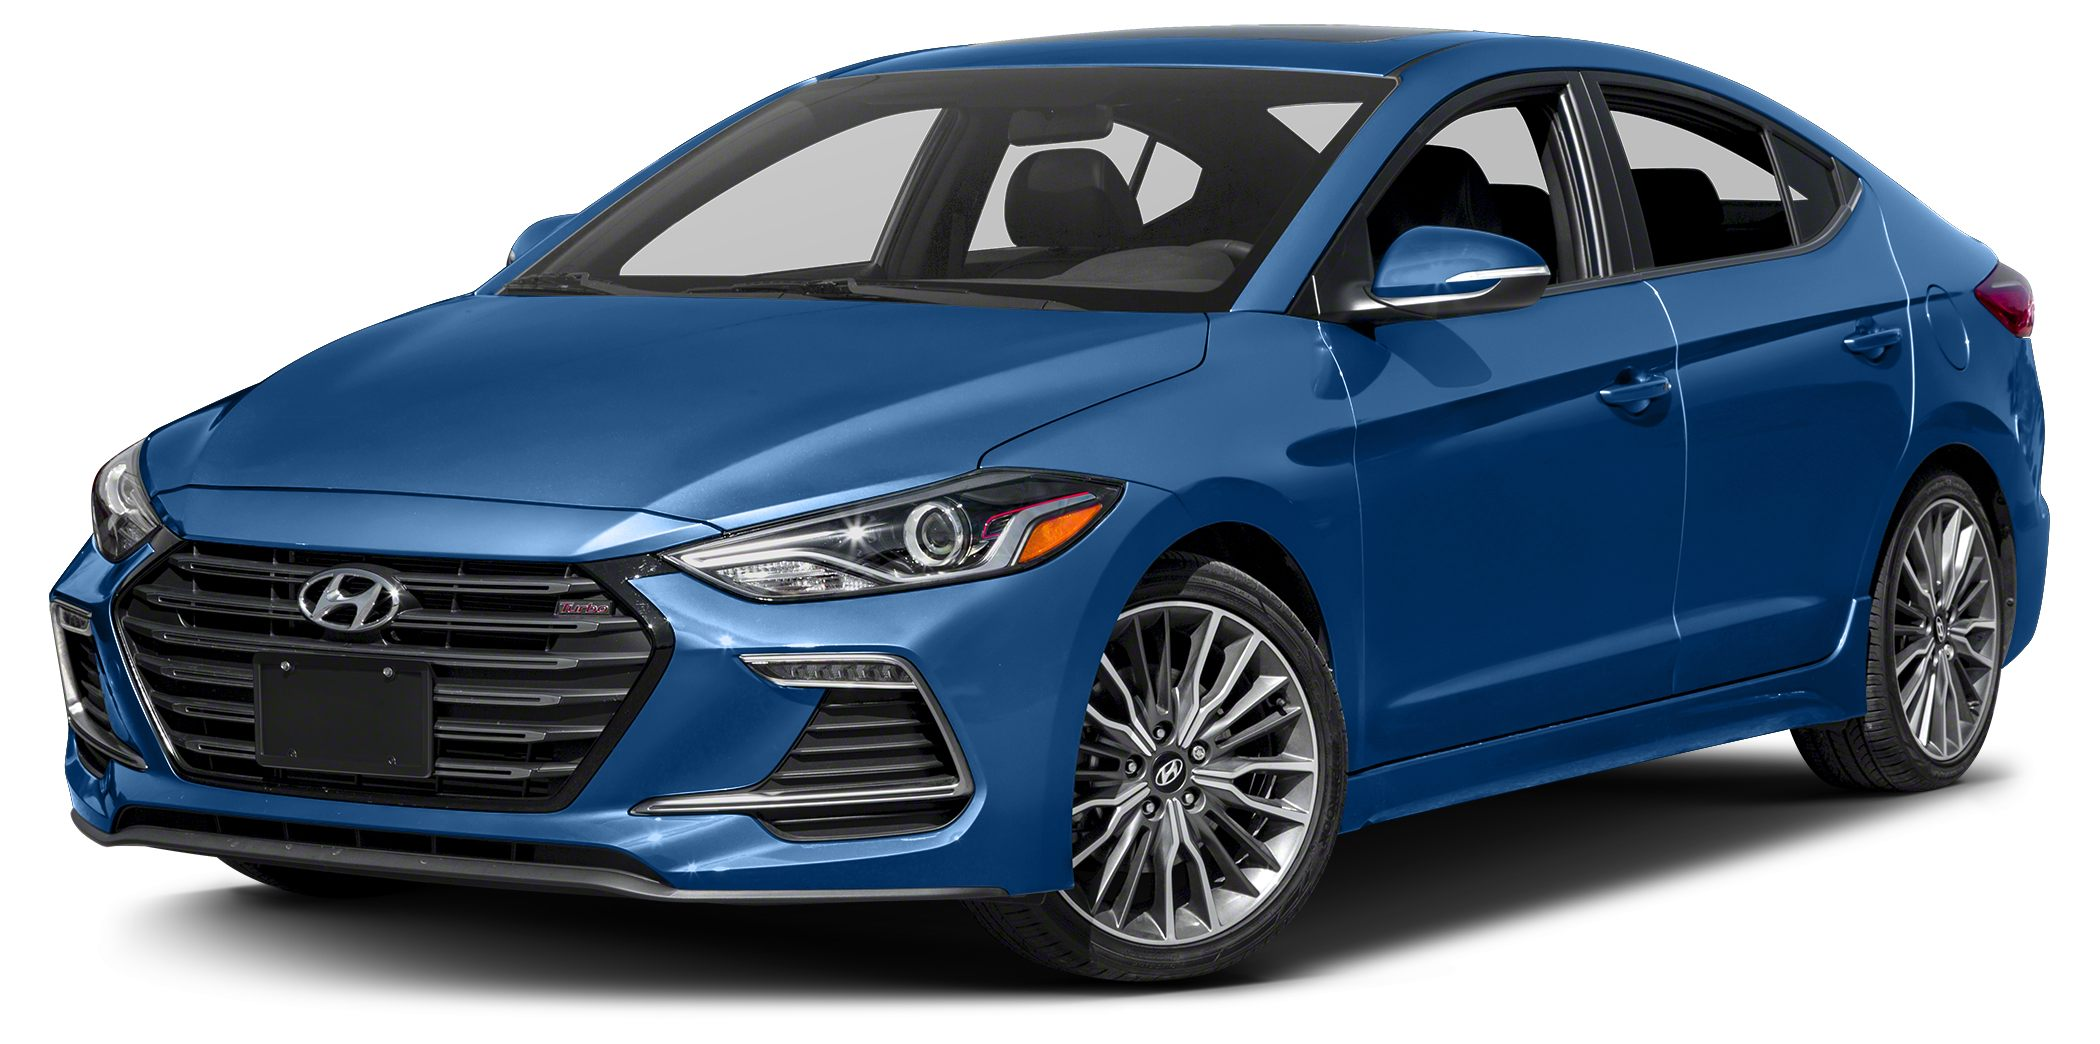 2017 Hyundai Elantra Sport Price includes 500 - HMF Bonus APR Cash - Standard - East Exp 0705